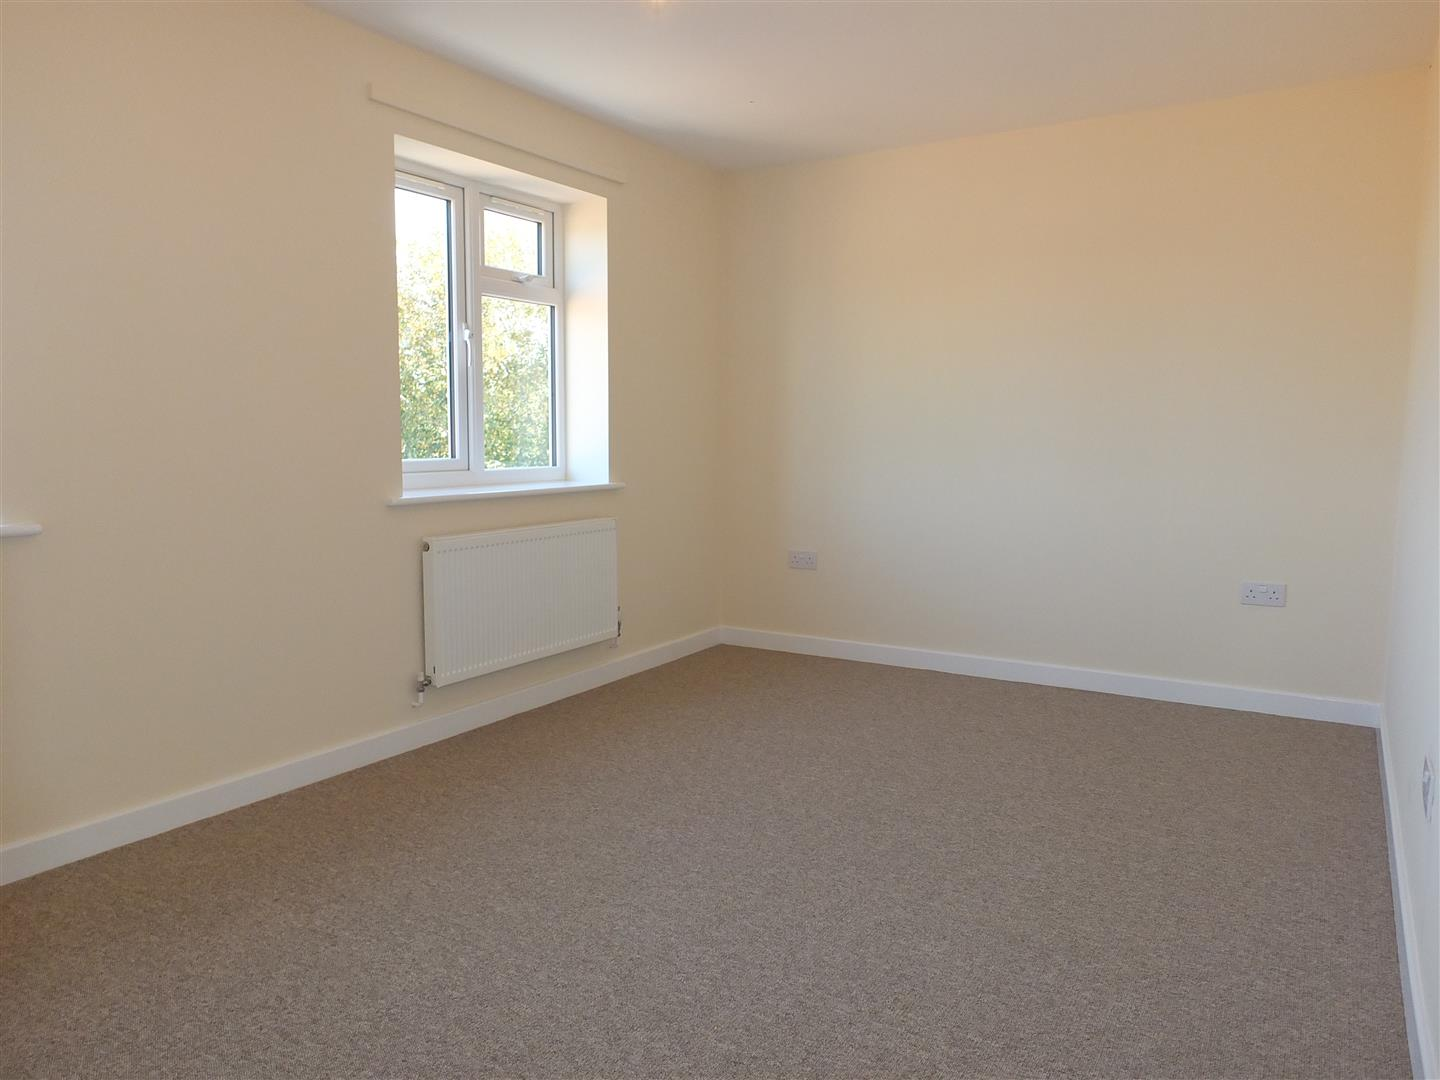 2 bed house to rent in Long Sutton Spalding, PE12 9LE  - Property Image 6